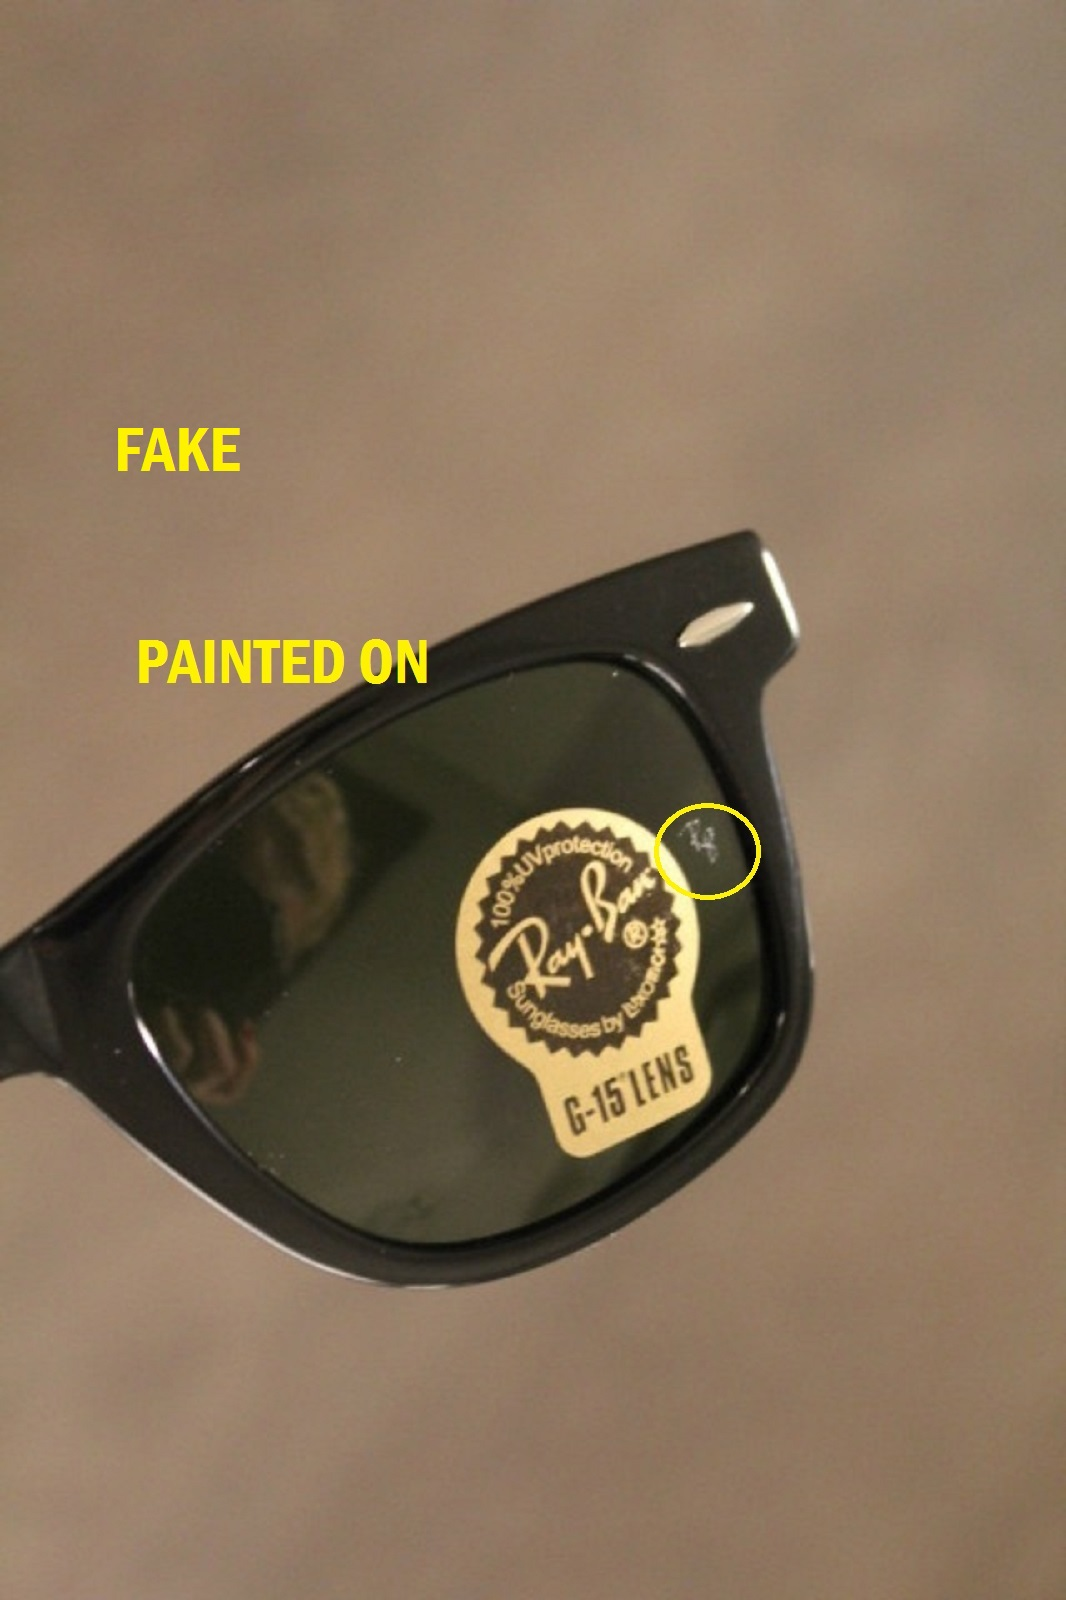 how can you tell if ray bans are real  fake ray ban sunglasses - The eBay Community